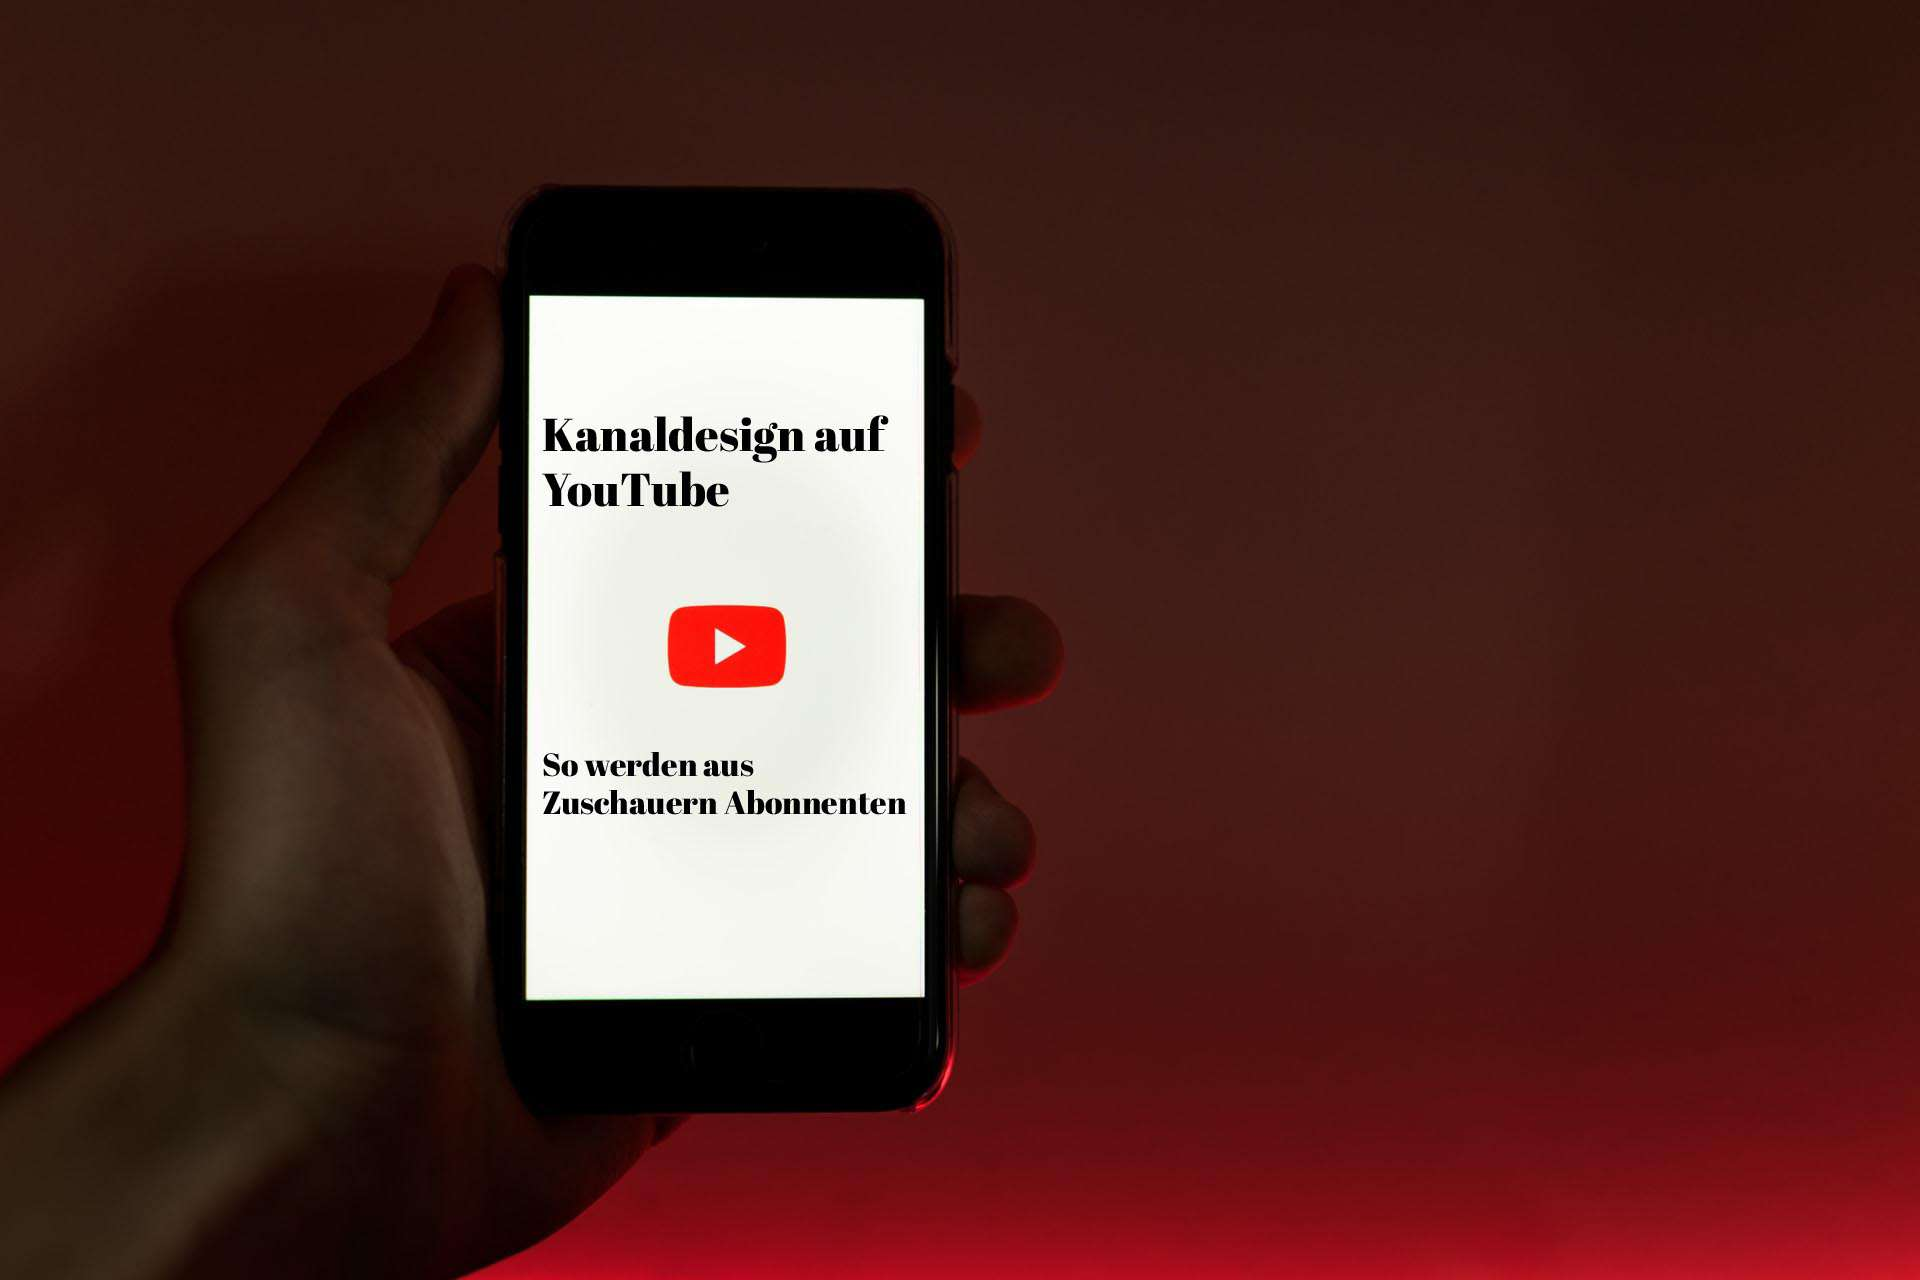 YouTube Kanaldesign